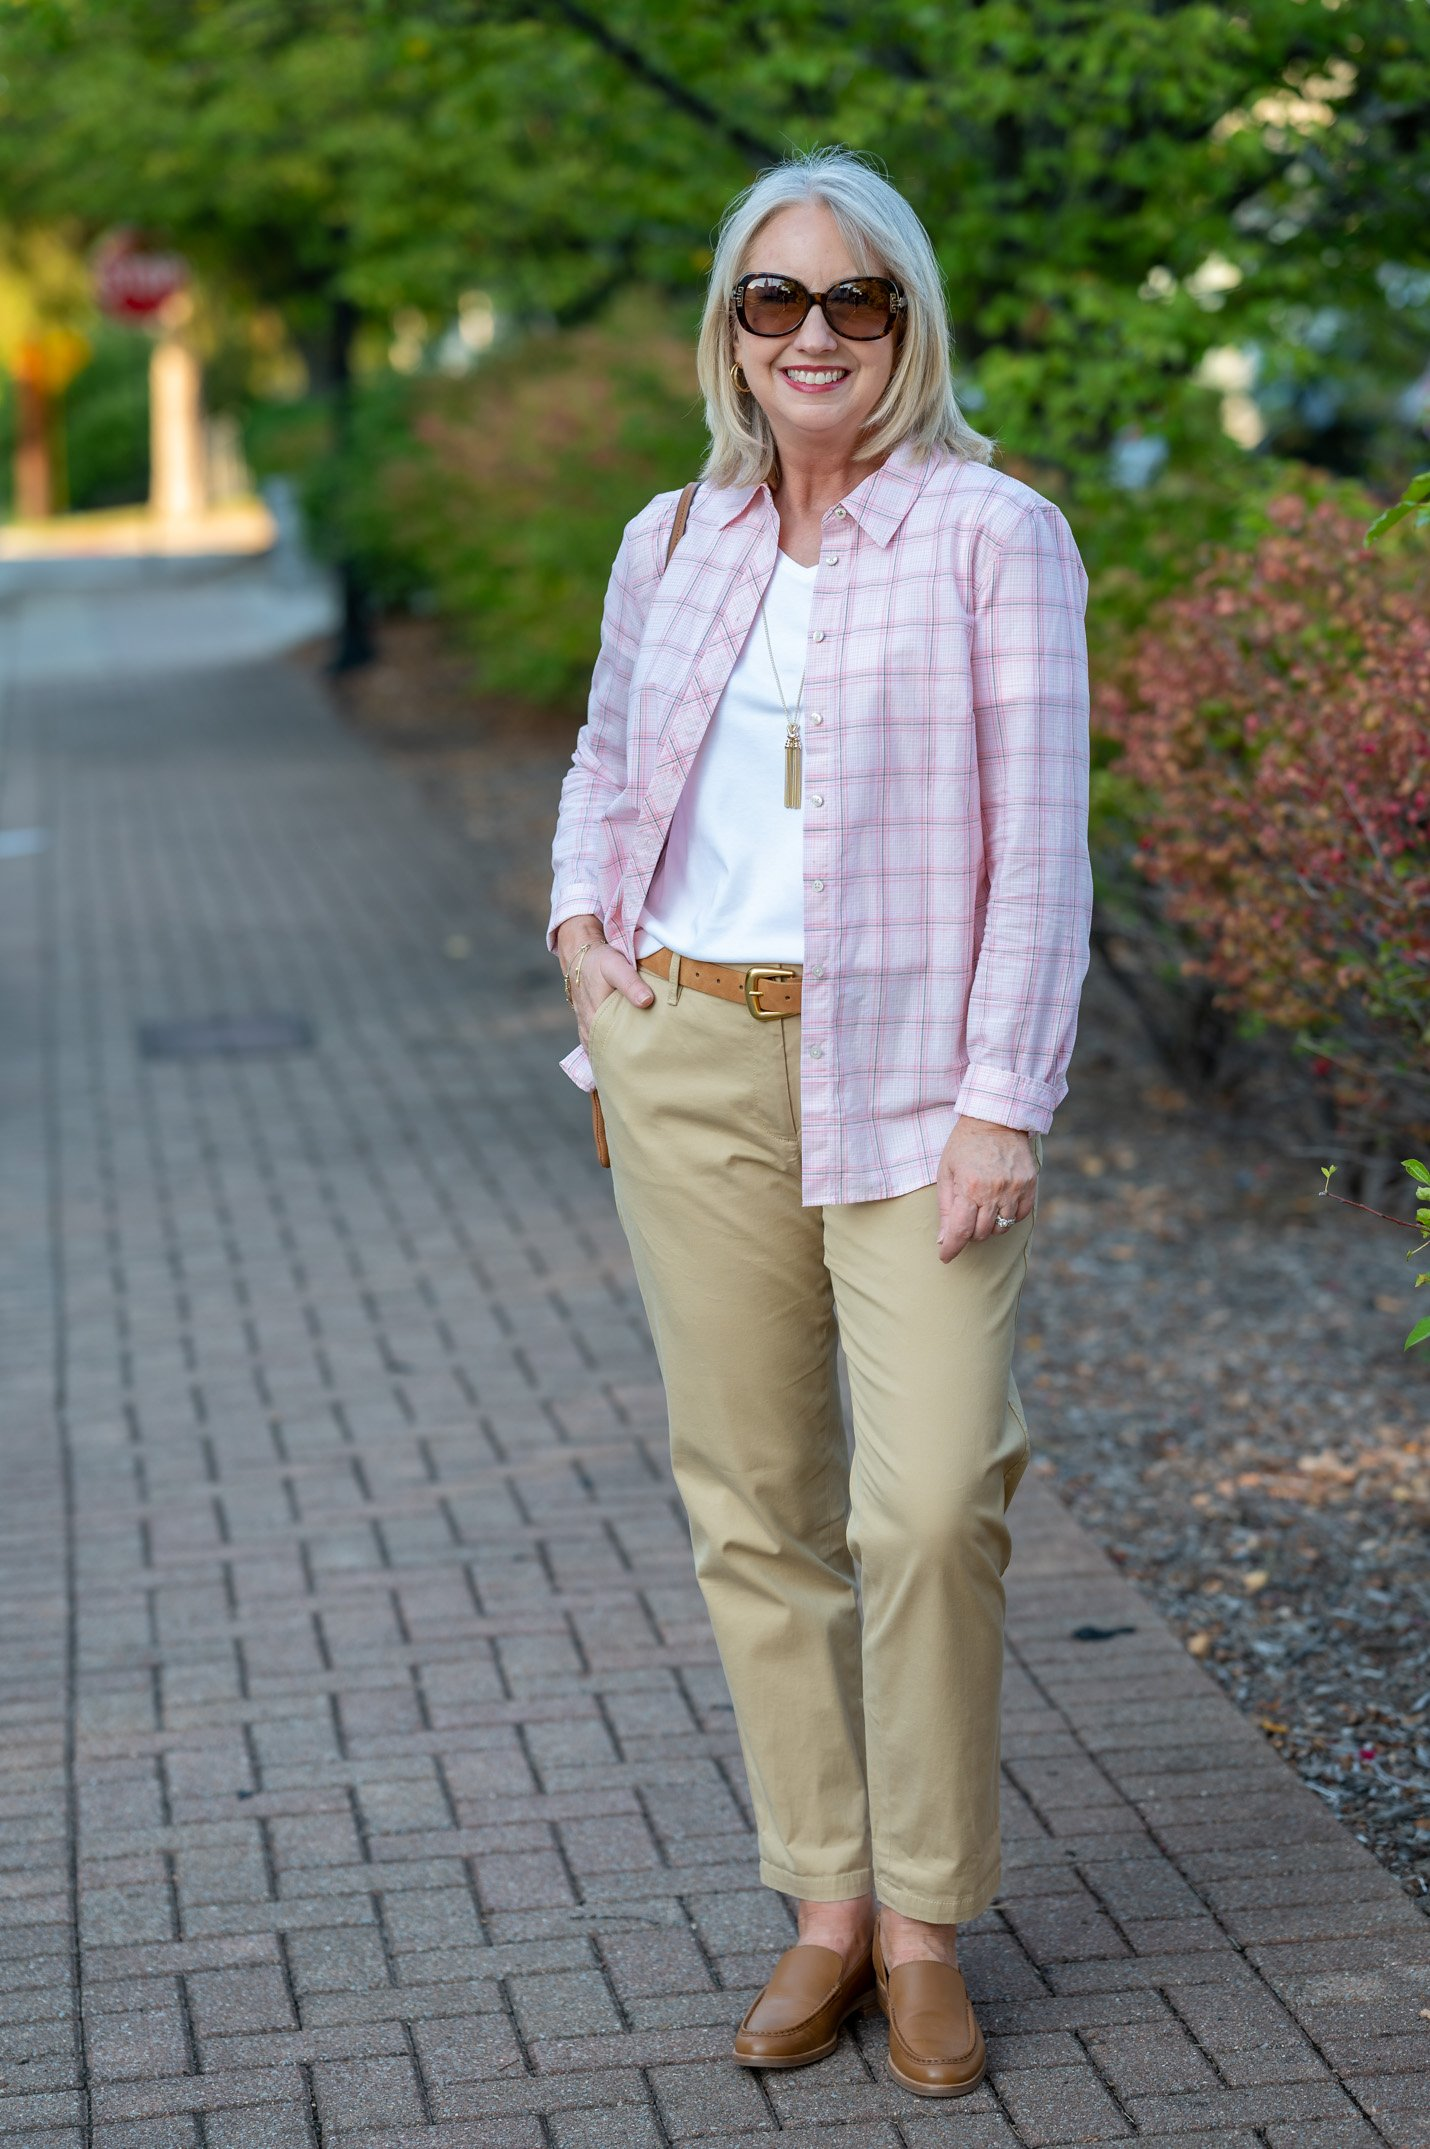 Favorite Classic Early Fall Outfit